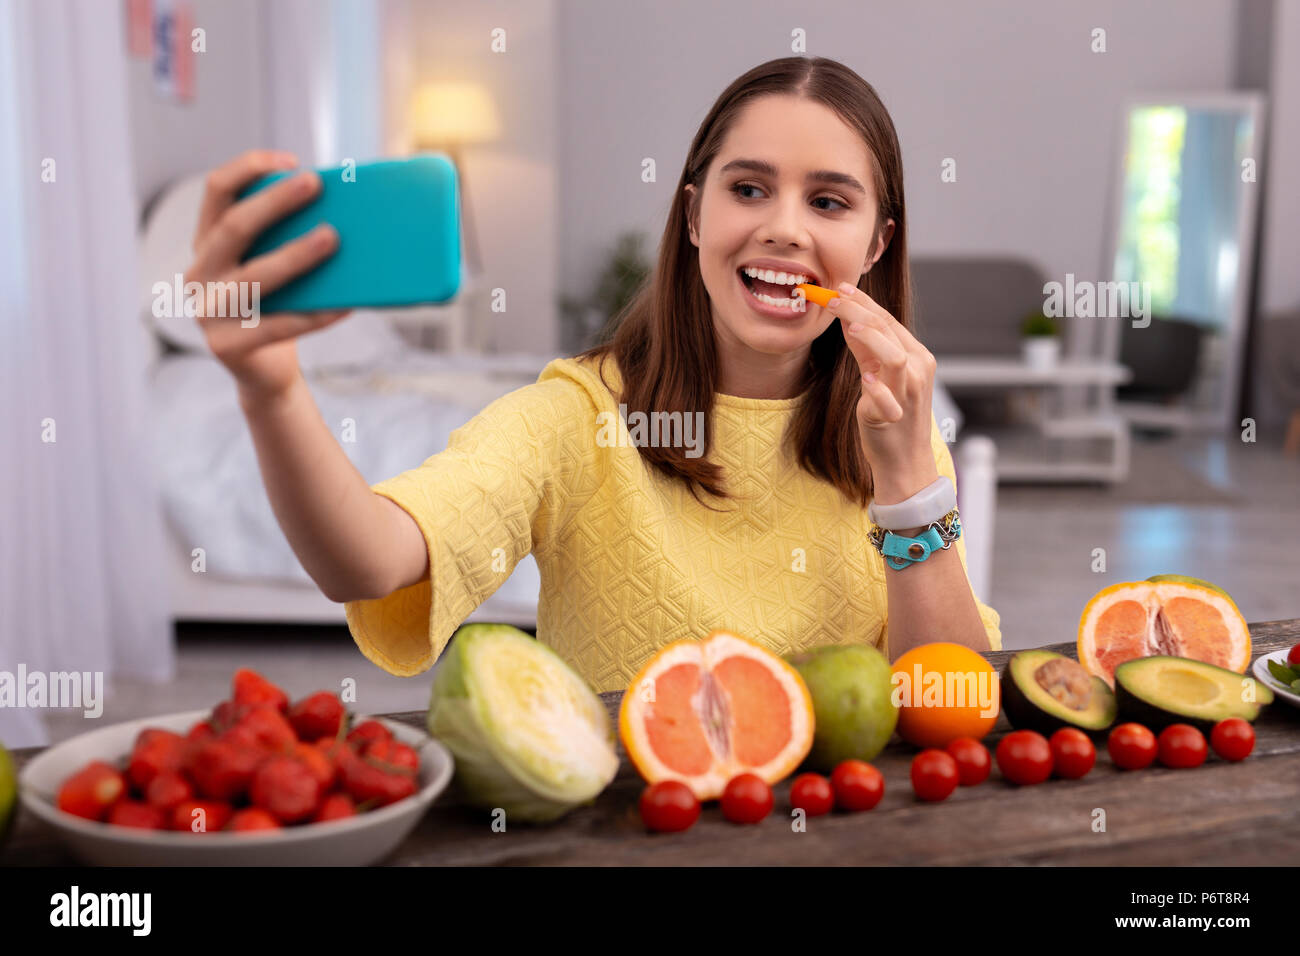 Happy teen blogger eating carrot - Stock Image